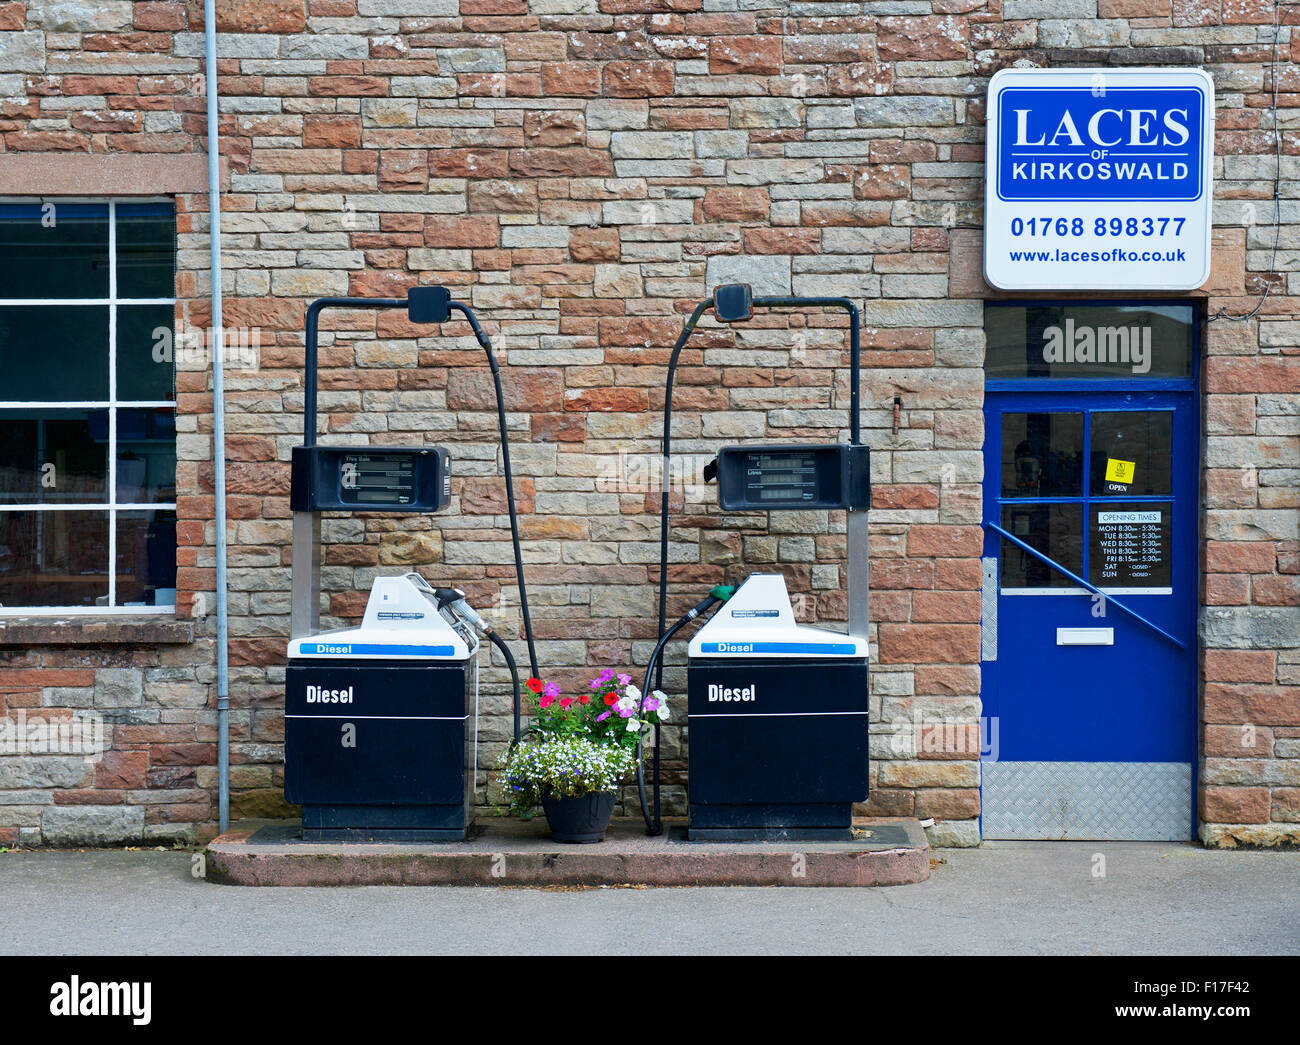 Two petrol pumps in the village of Kirkoswald, Eden Valley, Cumbria, England UK - Stock Image